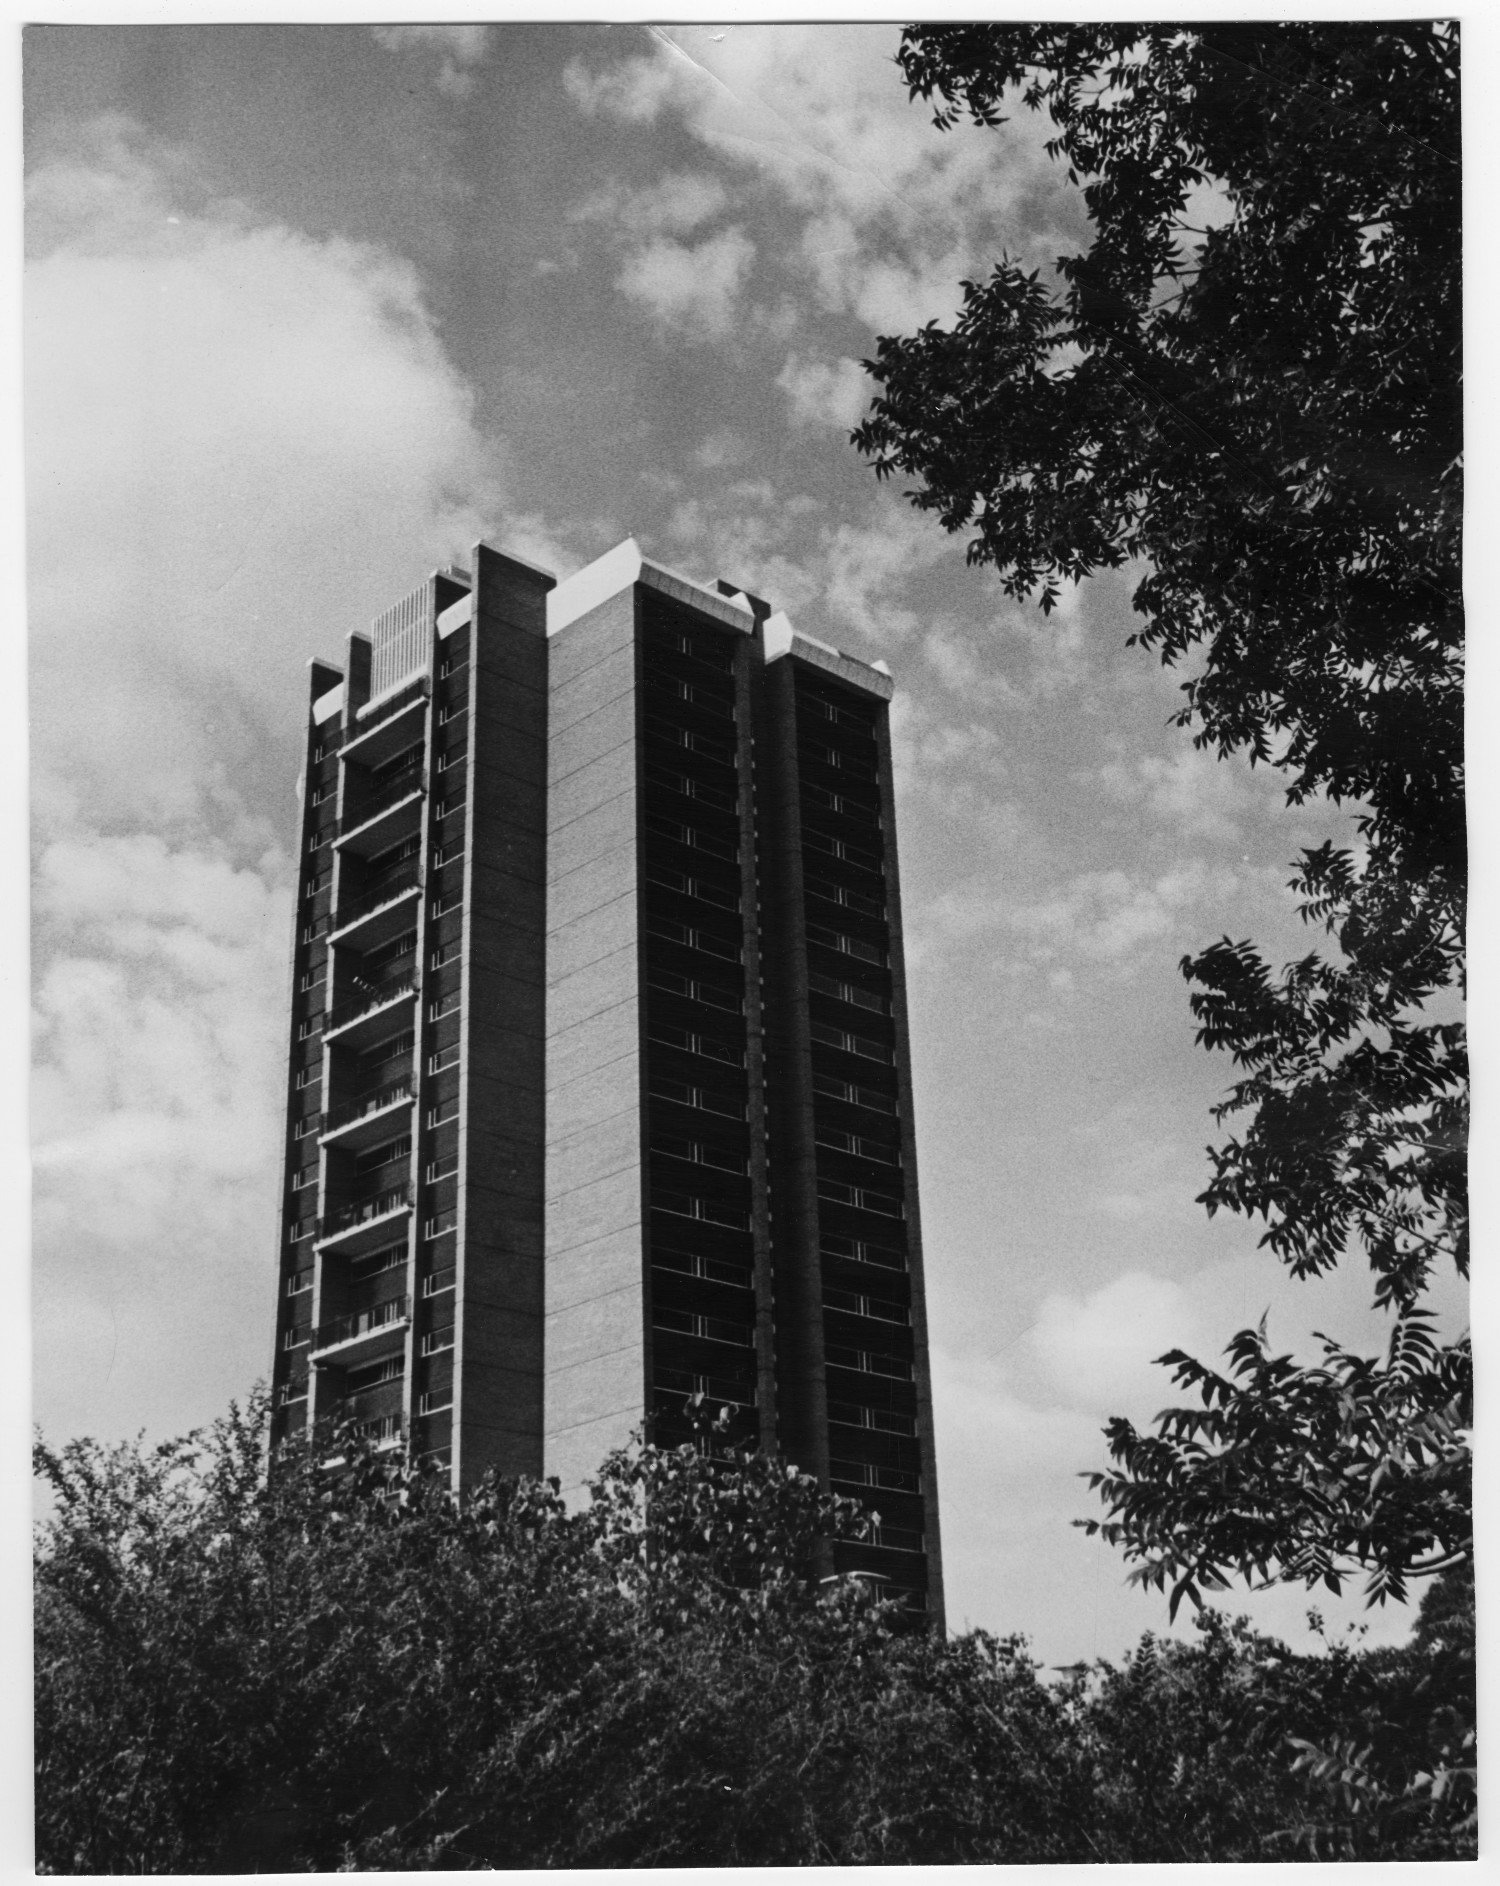 Stark Hall in 1967. Courtesy of University of North Texas Libraries and Denton Public Library.